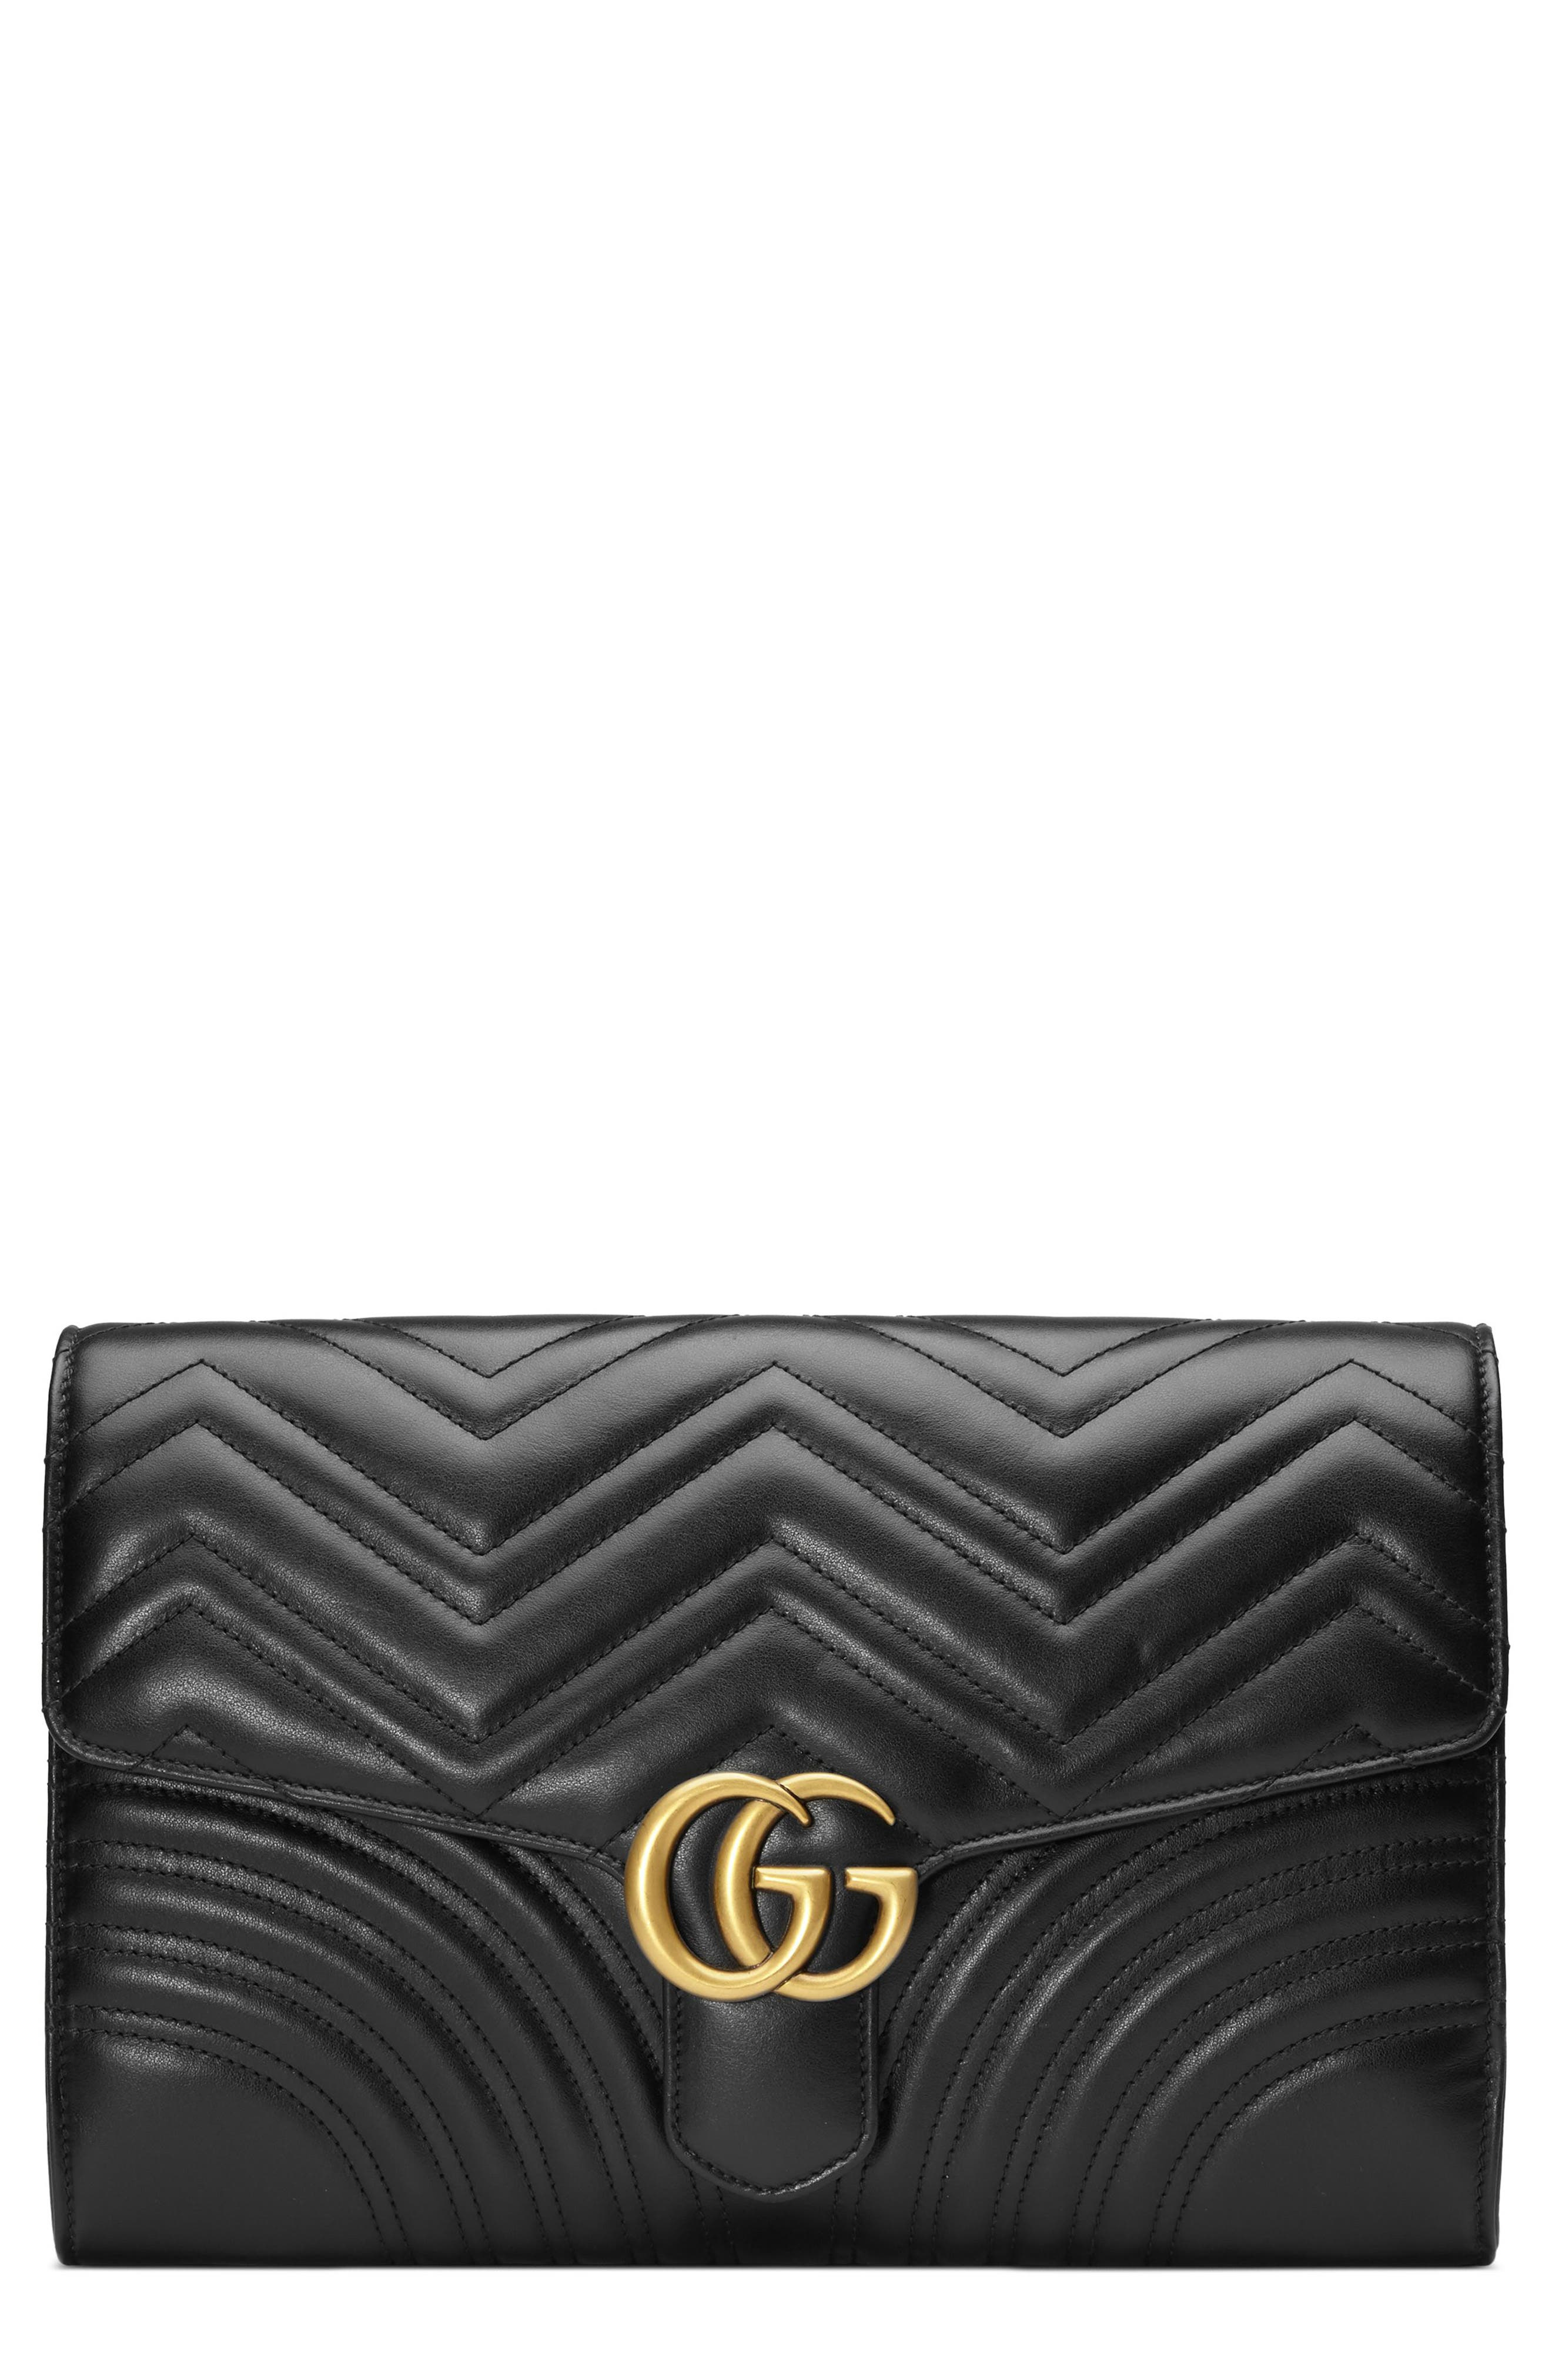 GG Marmont 2.0 Matelassé Leather Clutch,                         Main,                         color, 005